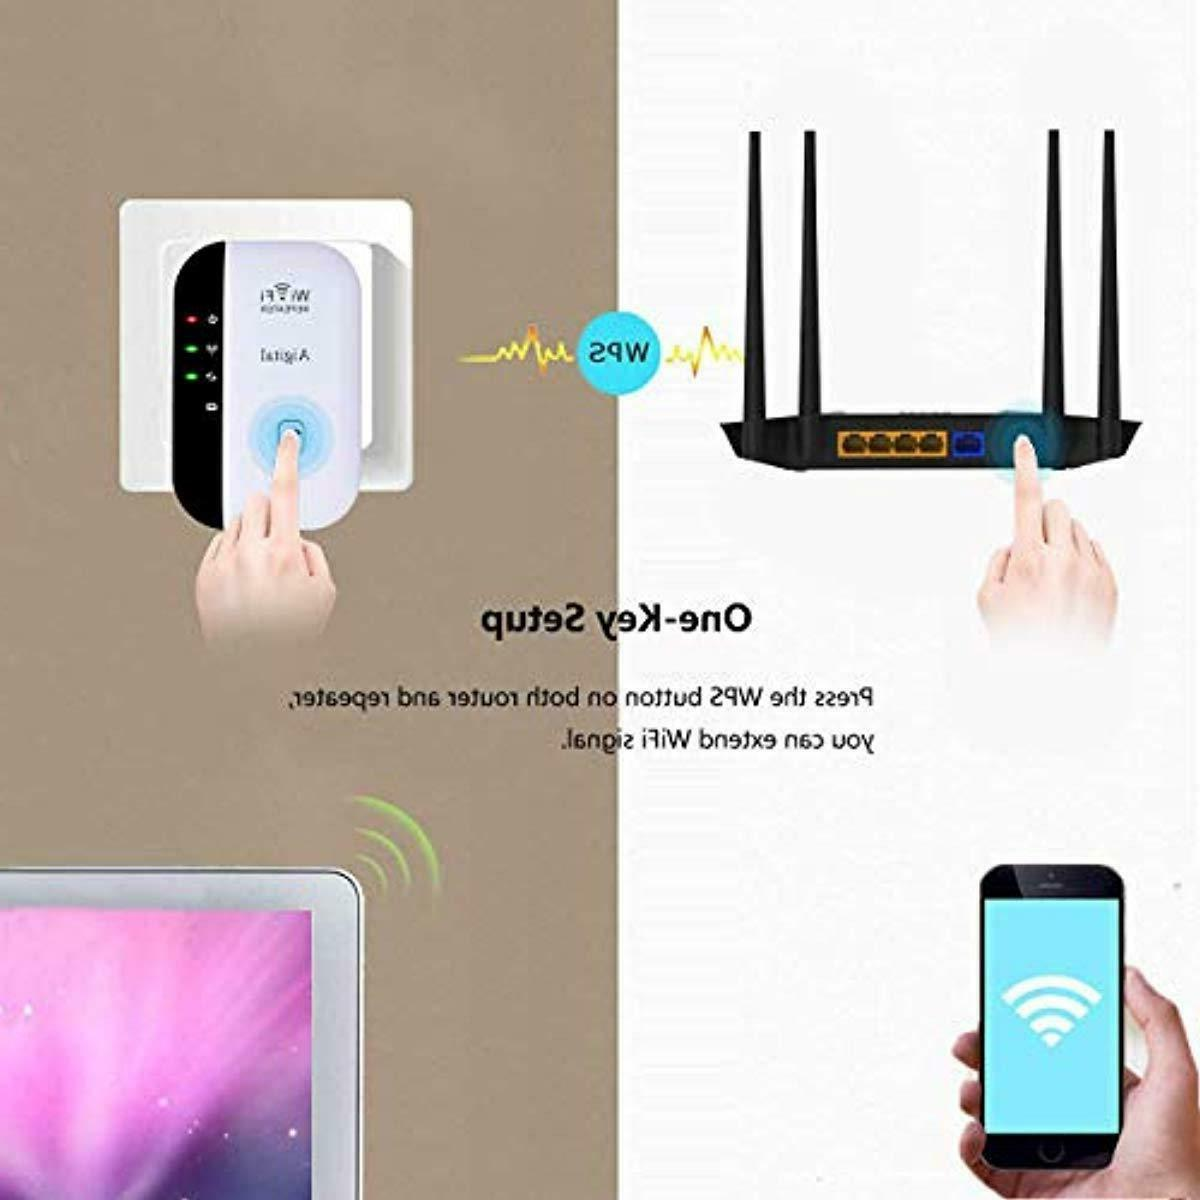 WiFi Range Wireless Repeater Signal Booster